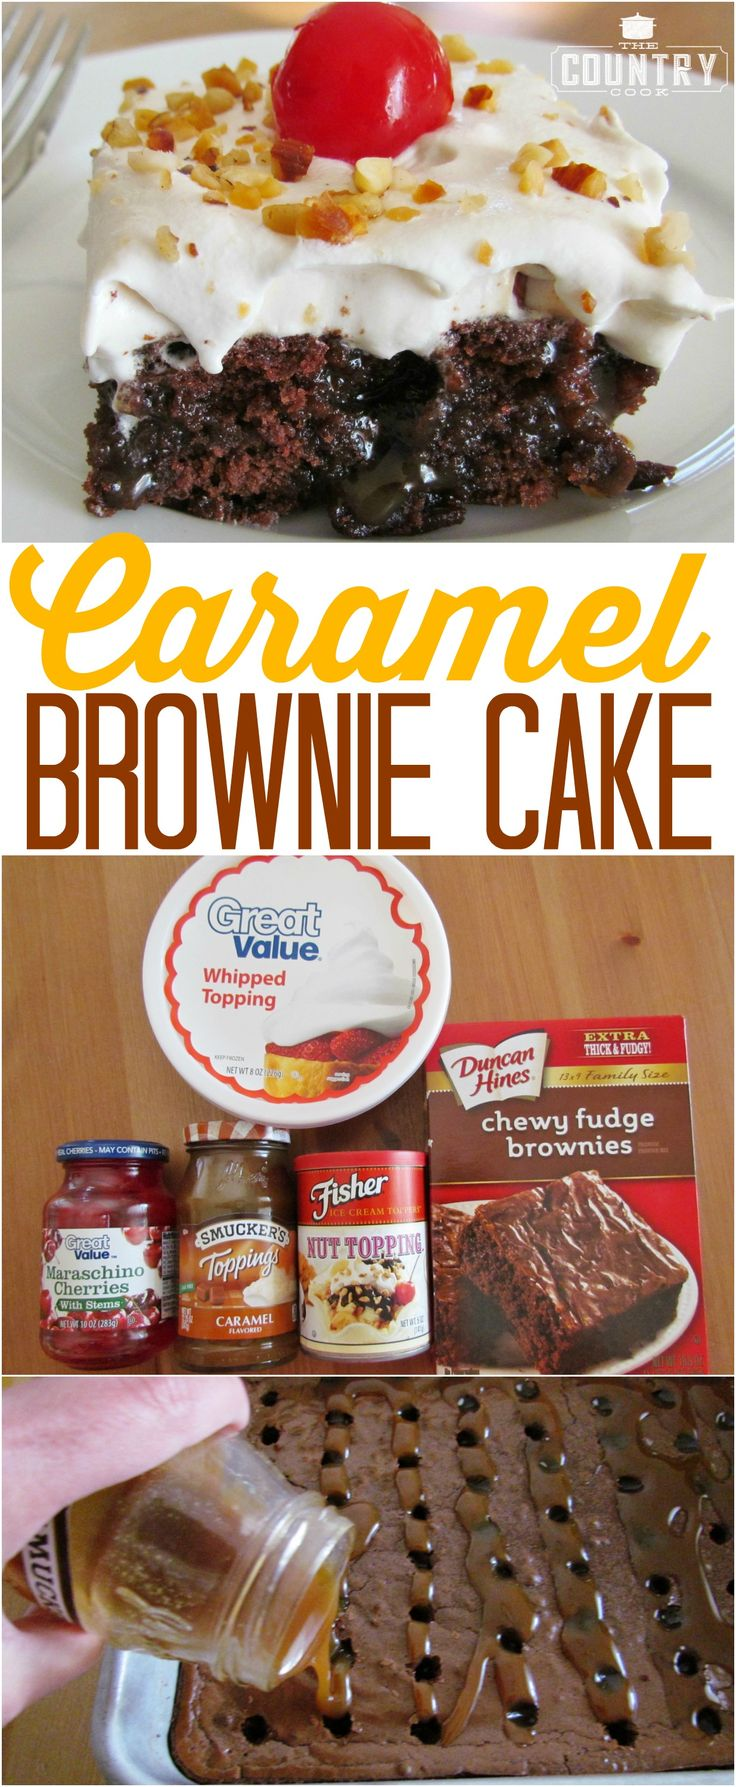 Caramel Brownie Cake recipe from The Country Cook